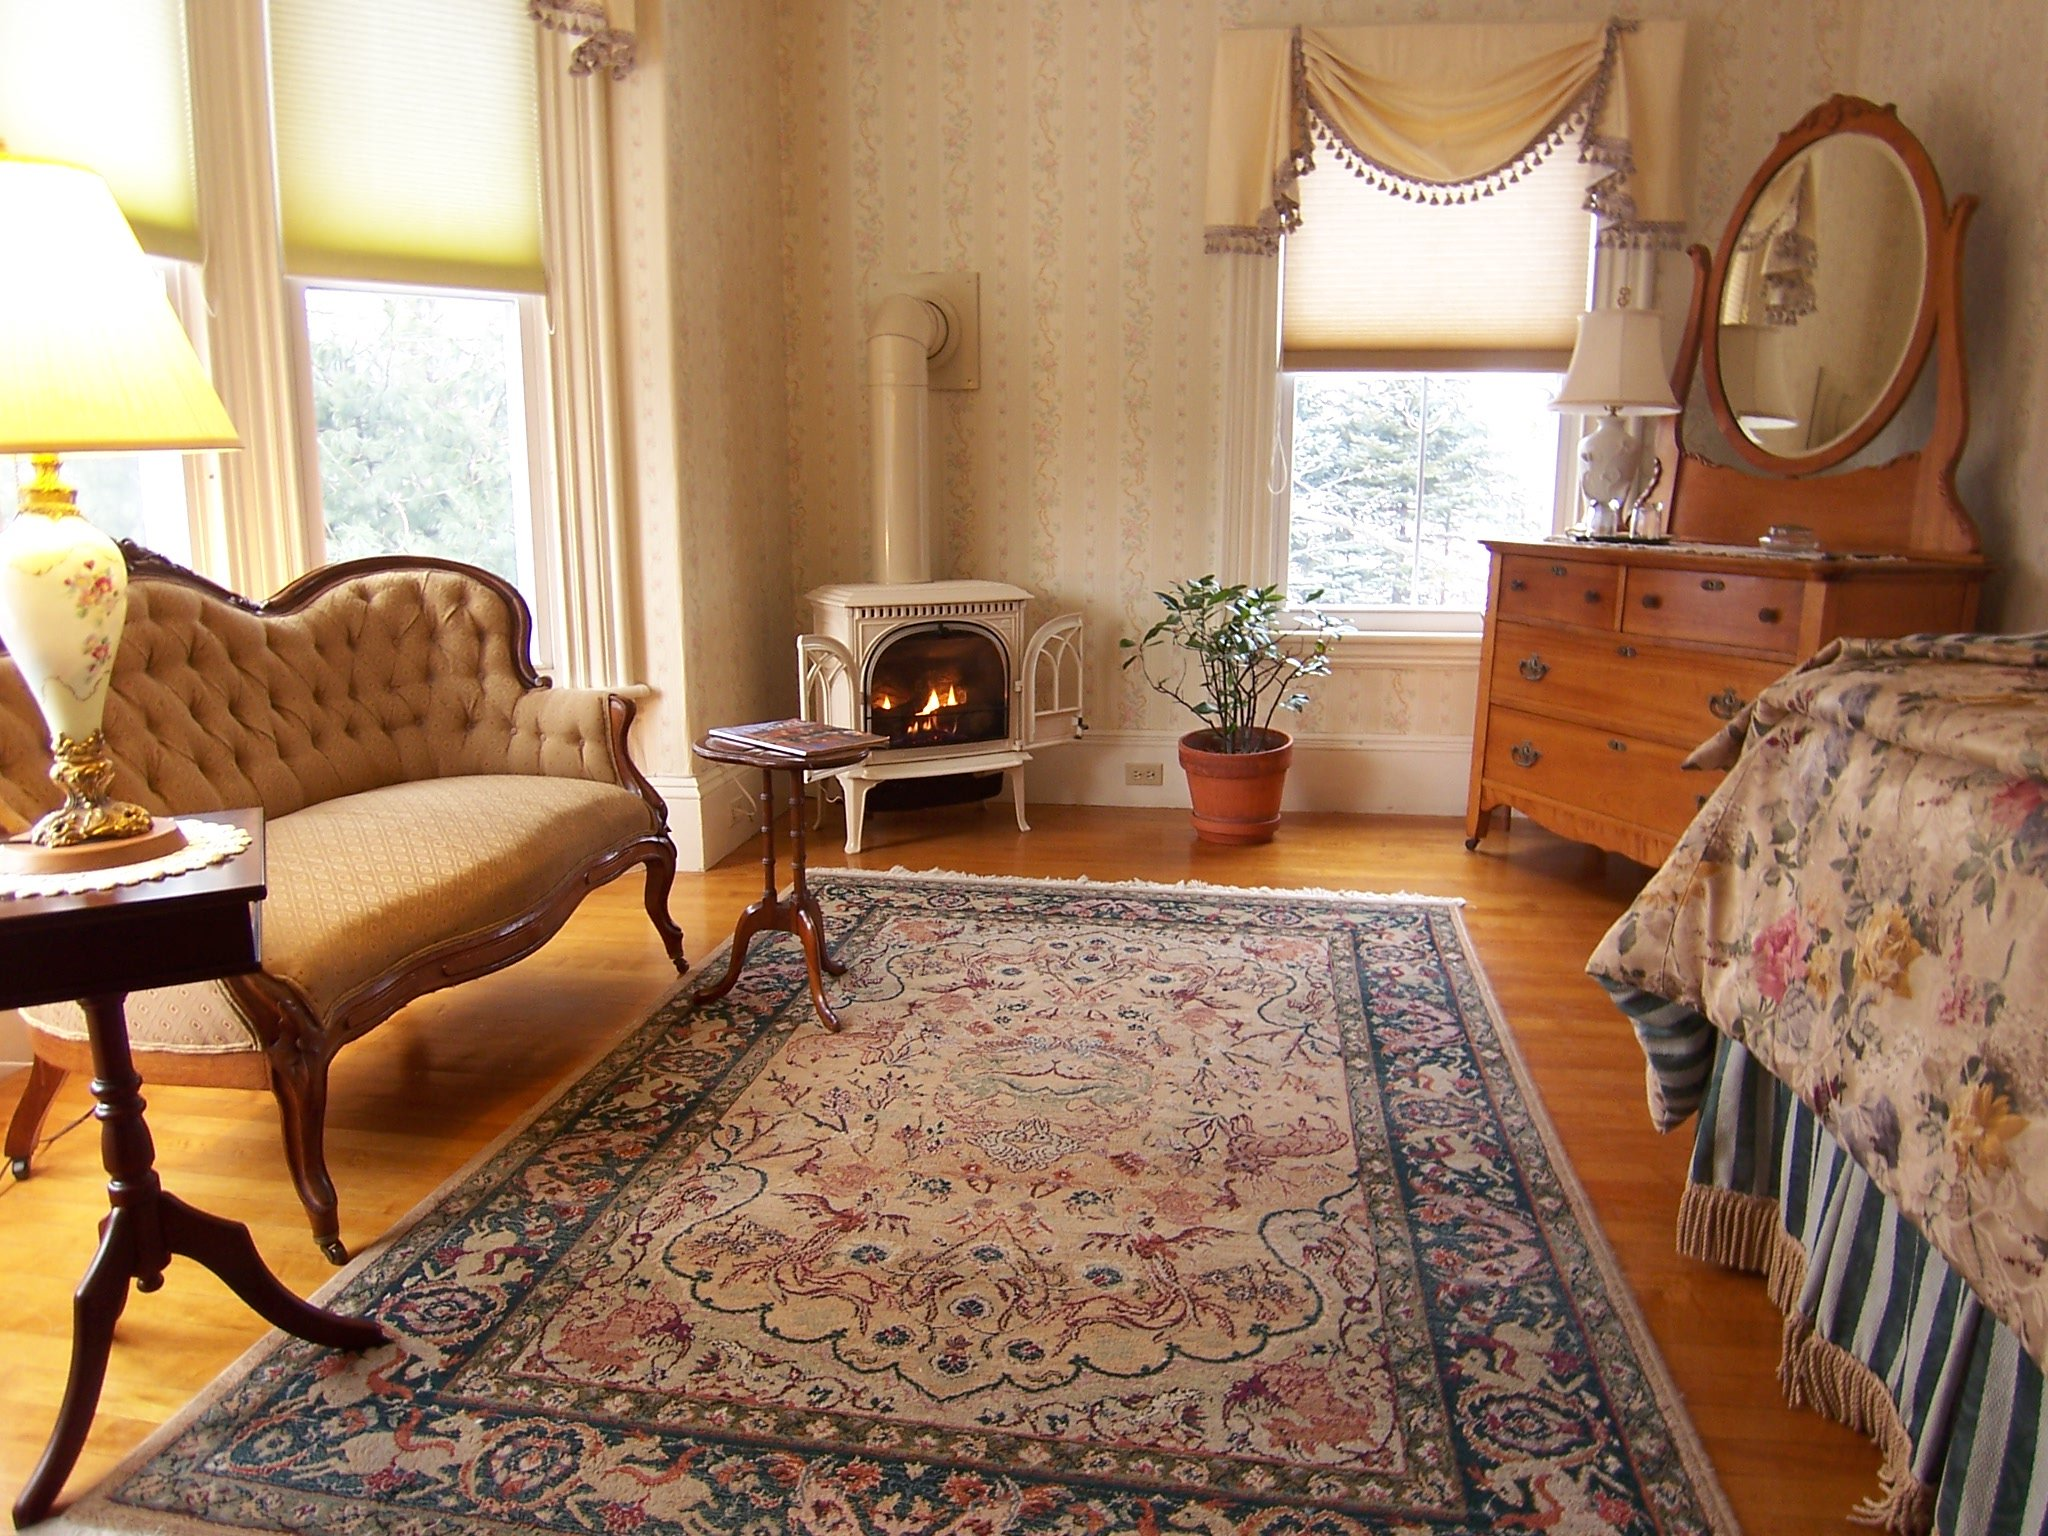 Bette Davis Room at Inns at Blackberry Common in Camden, Maine - a favorite guestroom